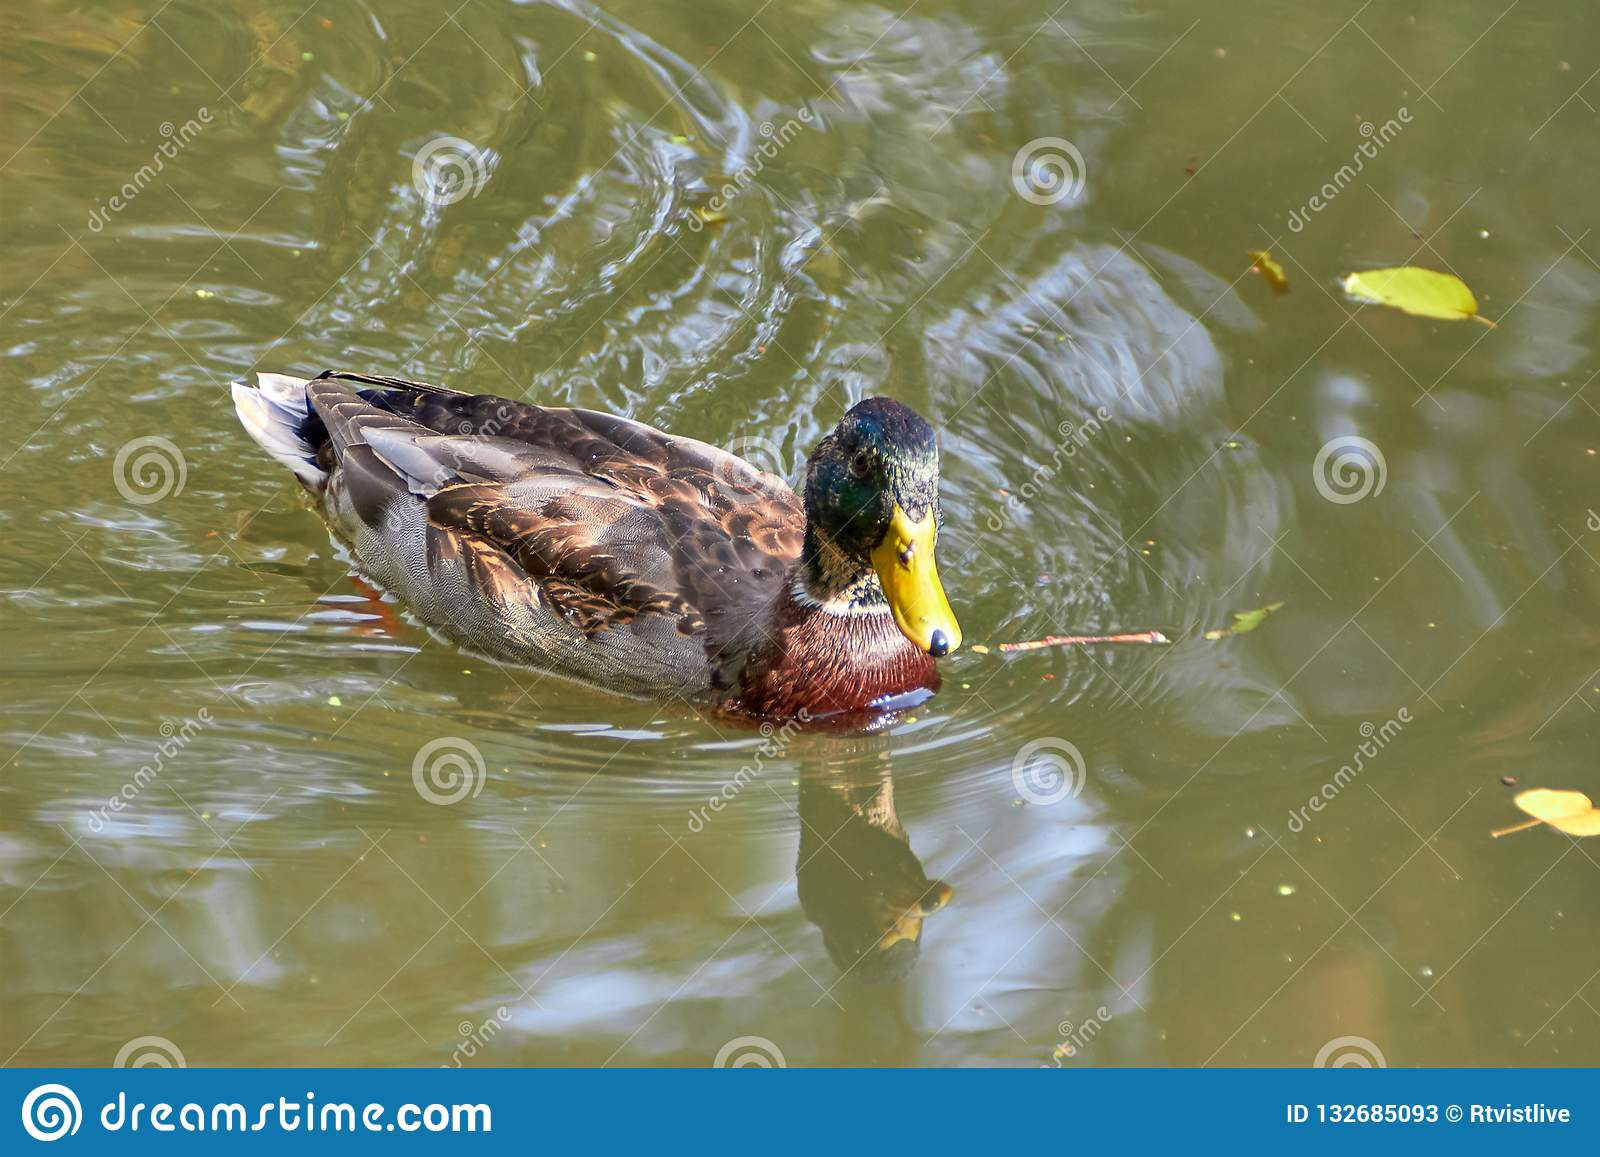 Duck swimming in the lake. Bird with bright multi-colored feathers. Duck with a beautiful color floats on water.